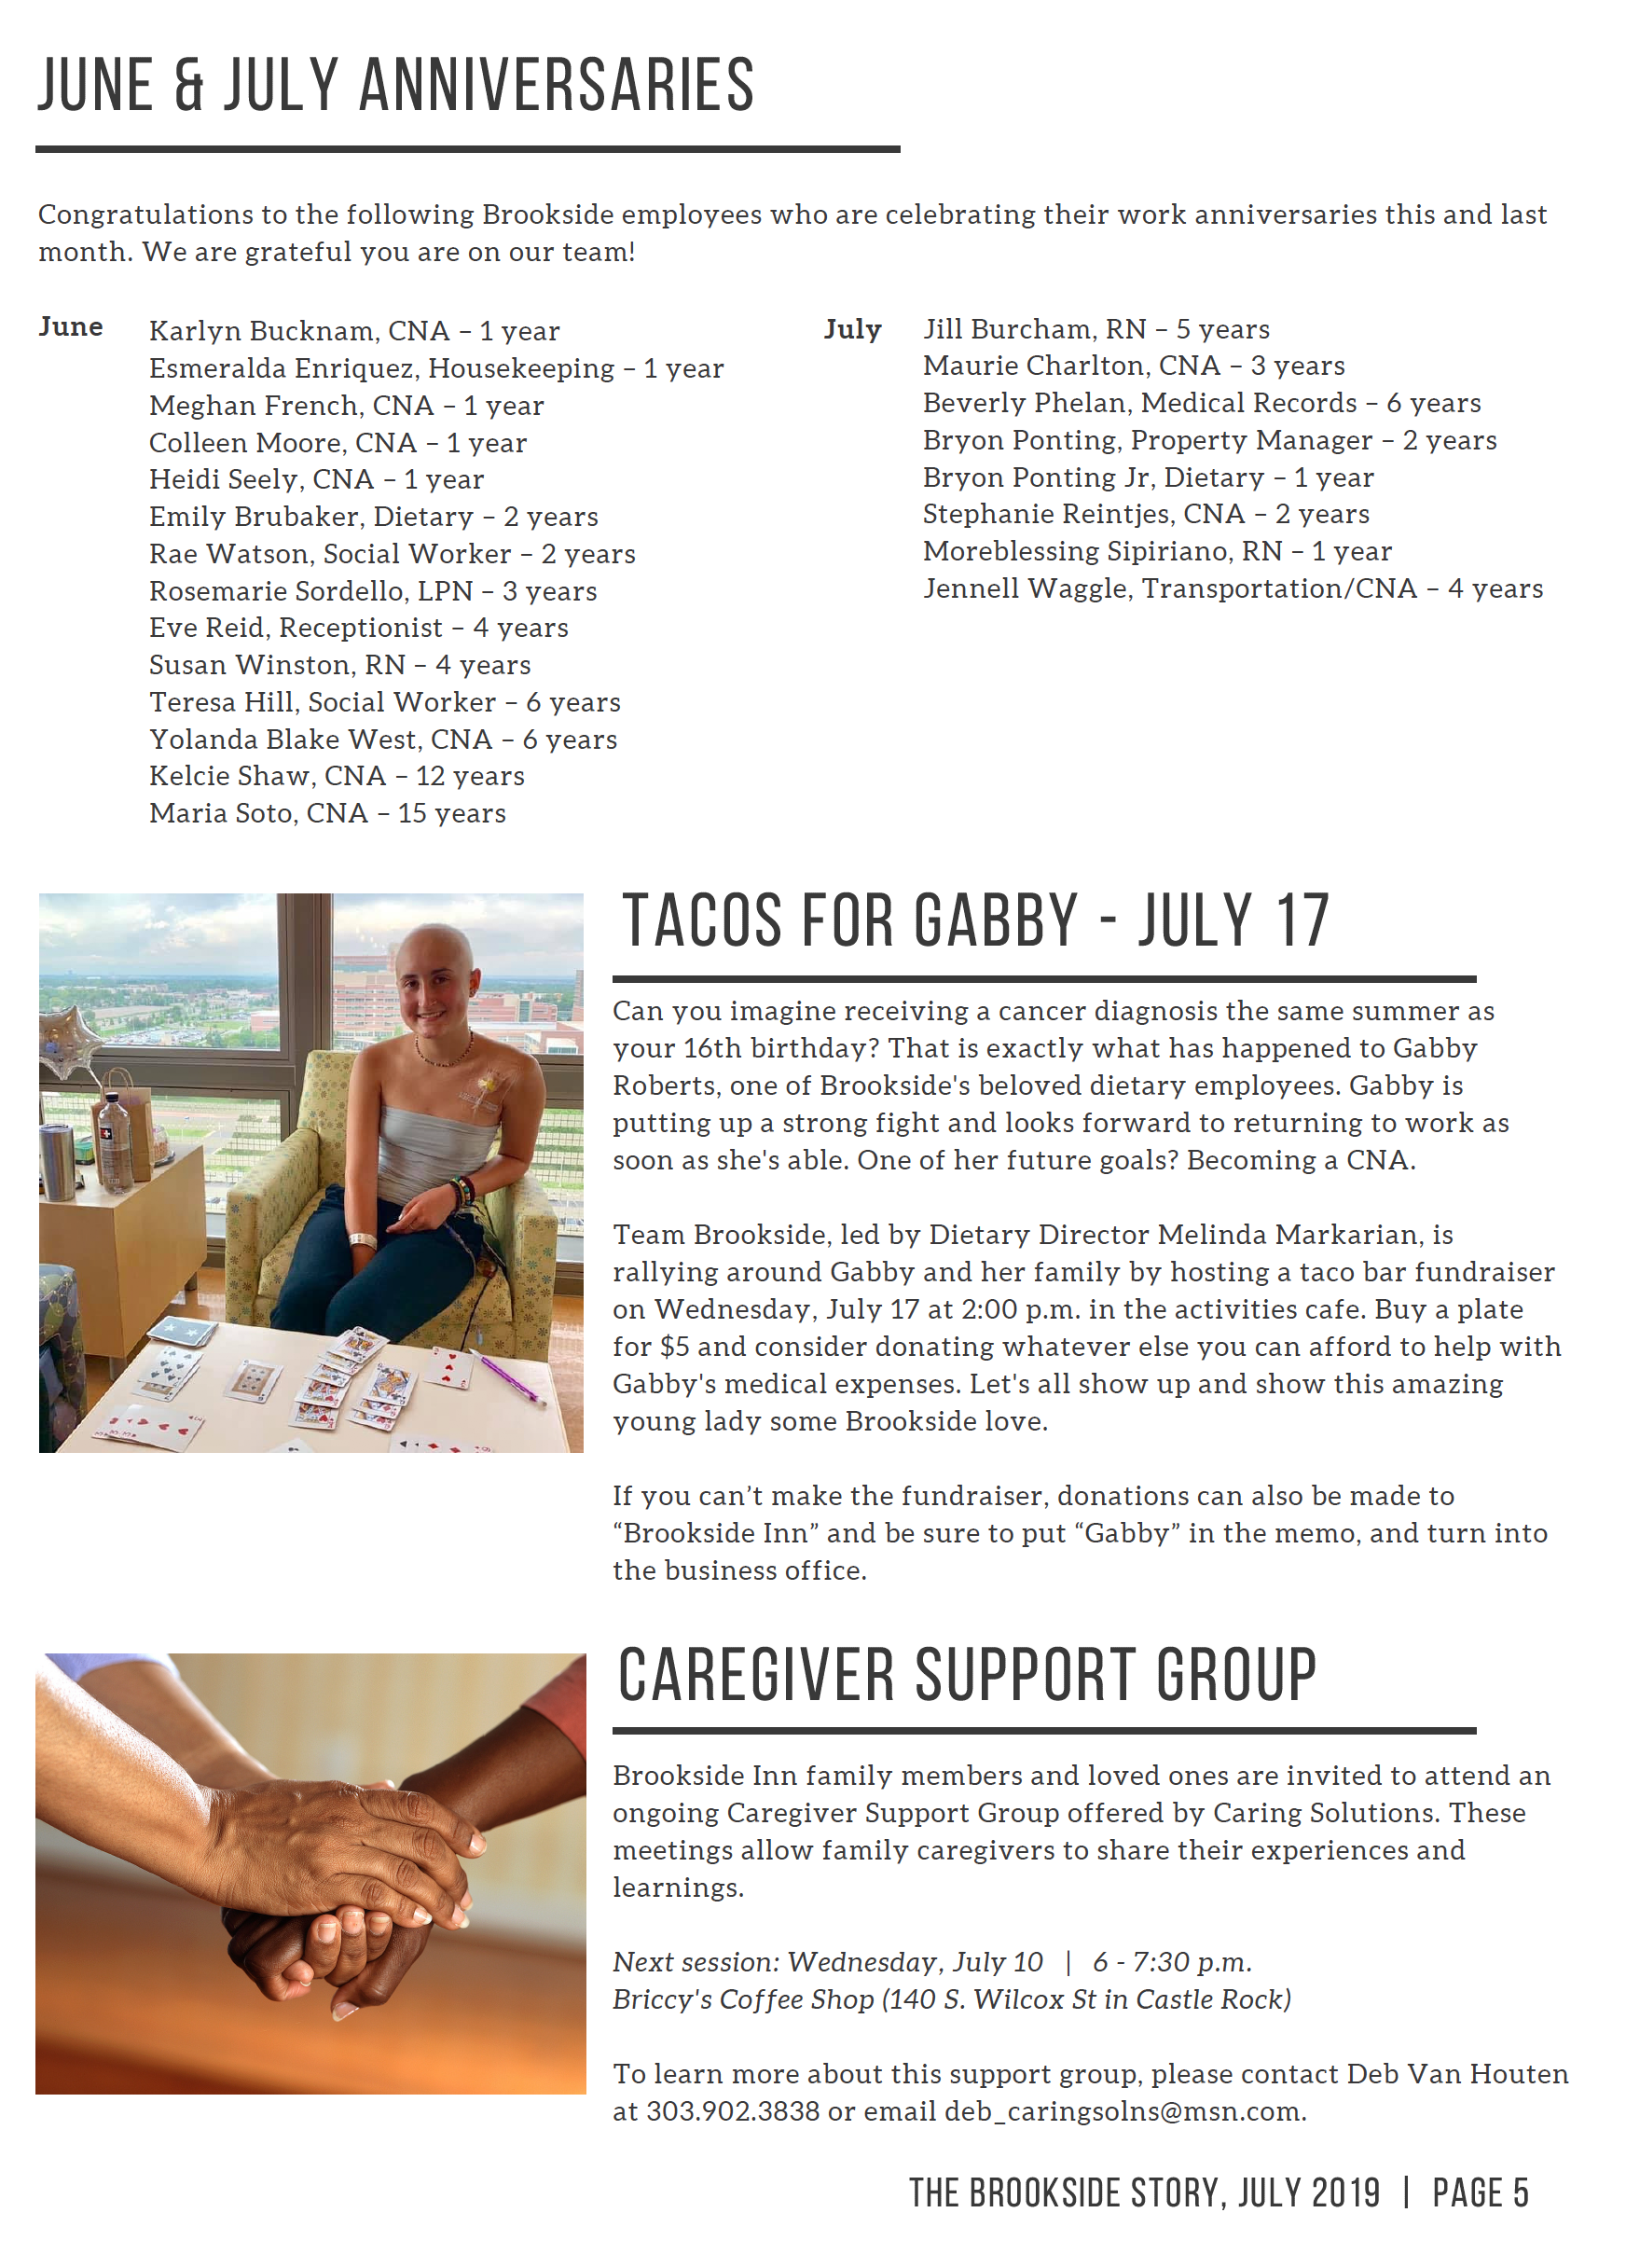 Page 5 - June and July Anniversaries, Taco fundraiser for Cancer patient, Gabby and Caregiver support group July 10th session at 6pm.